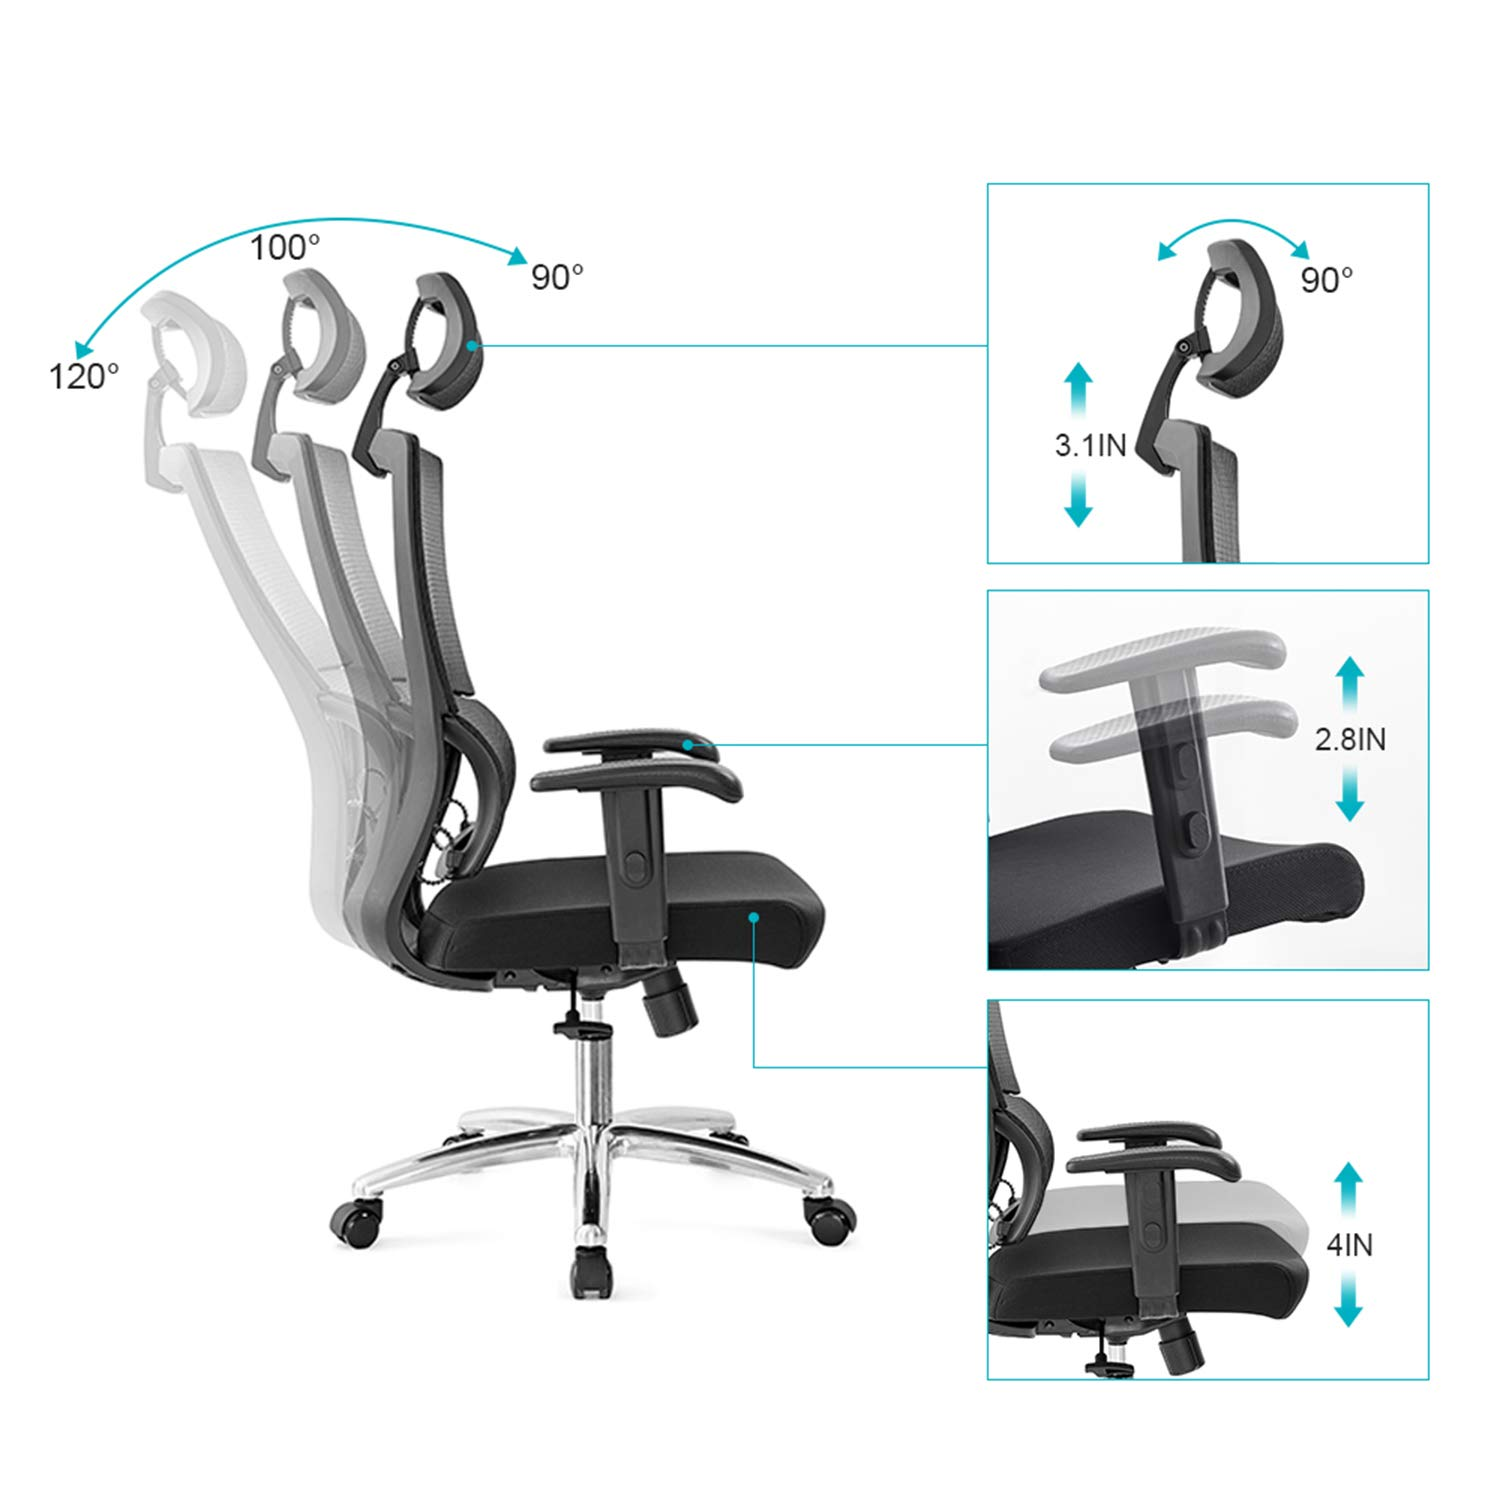 Ticova Ergonomic Office Chair with Unique Elastic Ring Lumbar Support and Thick Seat Cushion- High Back Mesh Chair with Adjustable Headrest and Armrest - Reclinable Computer Desk Chair by Ticova (Image #3)